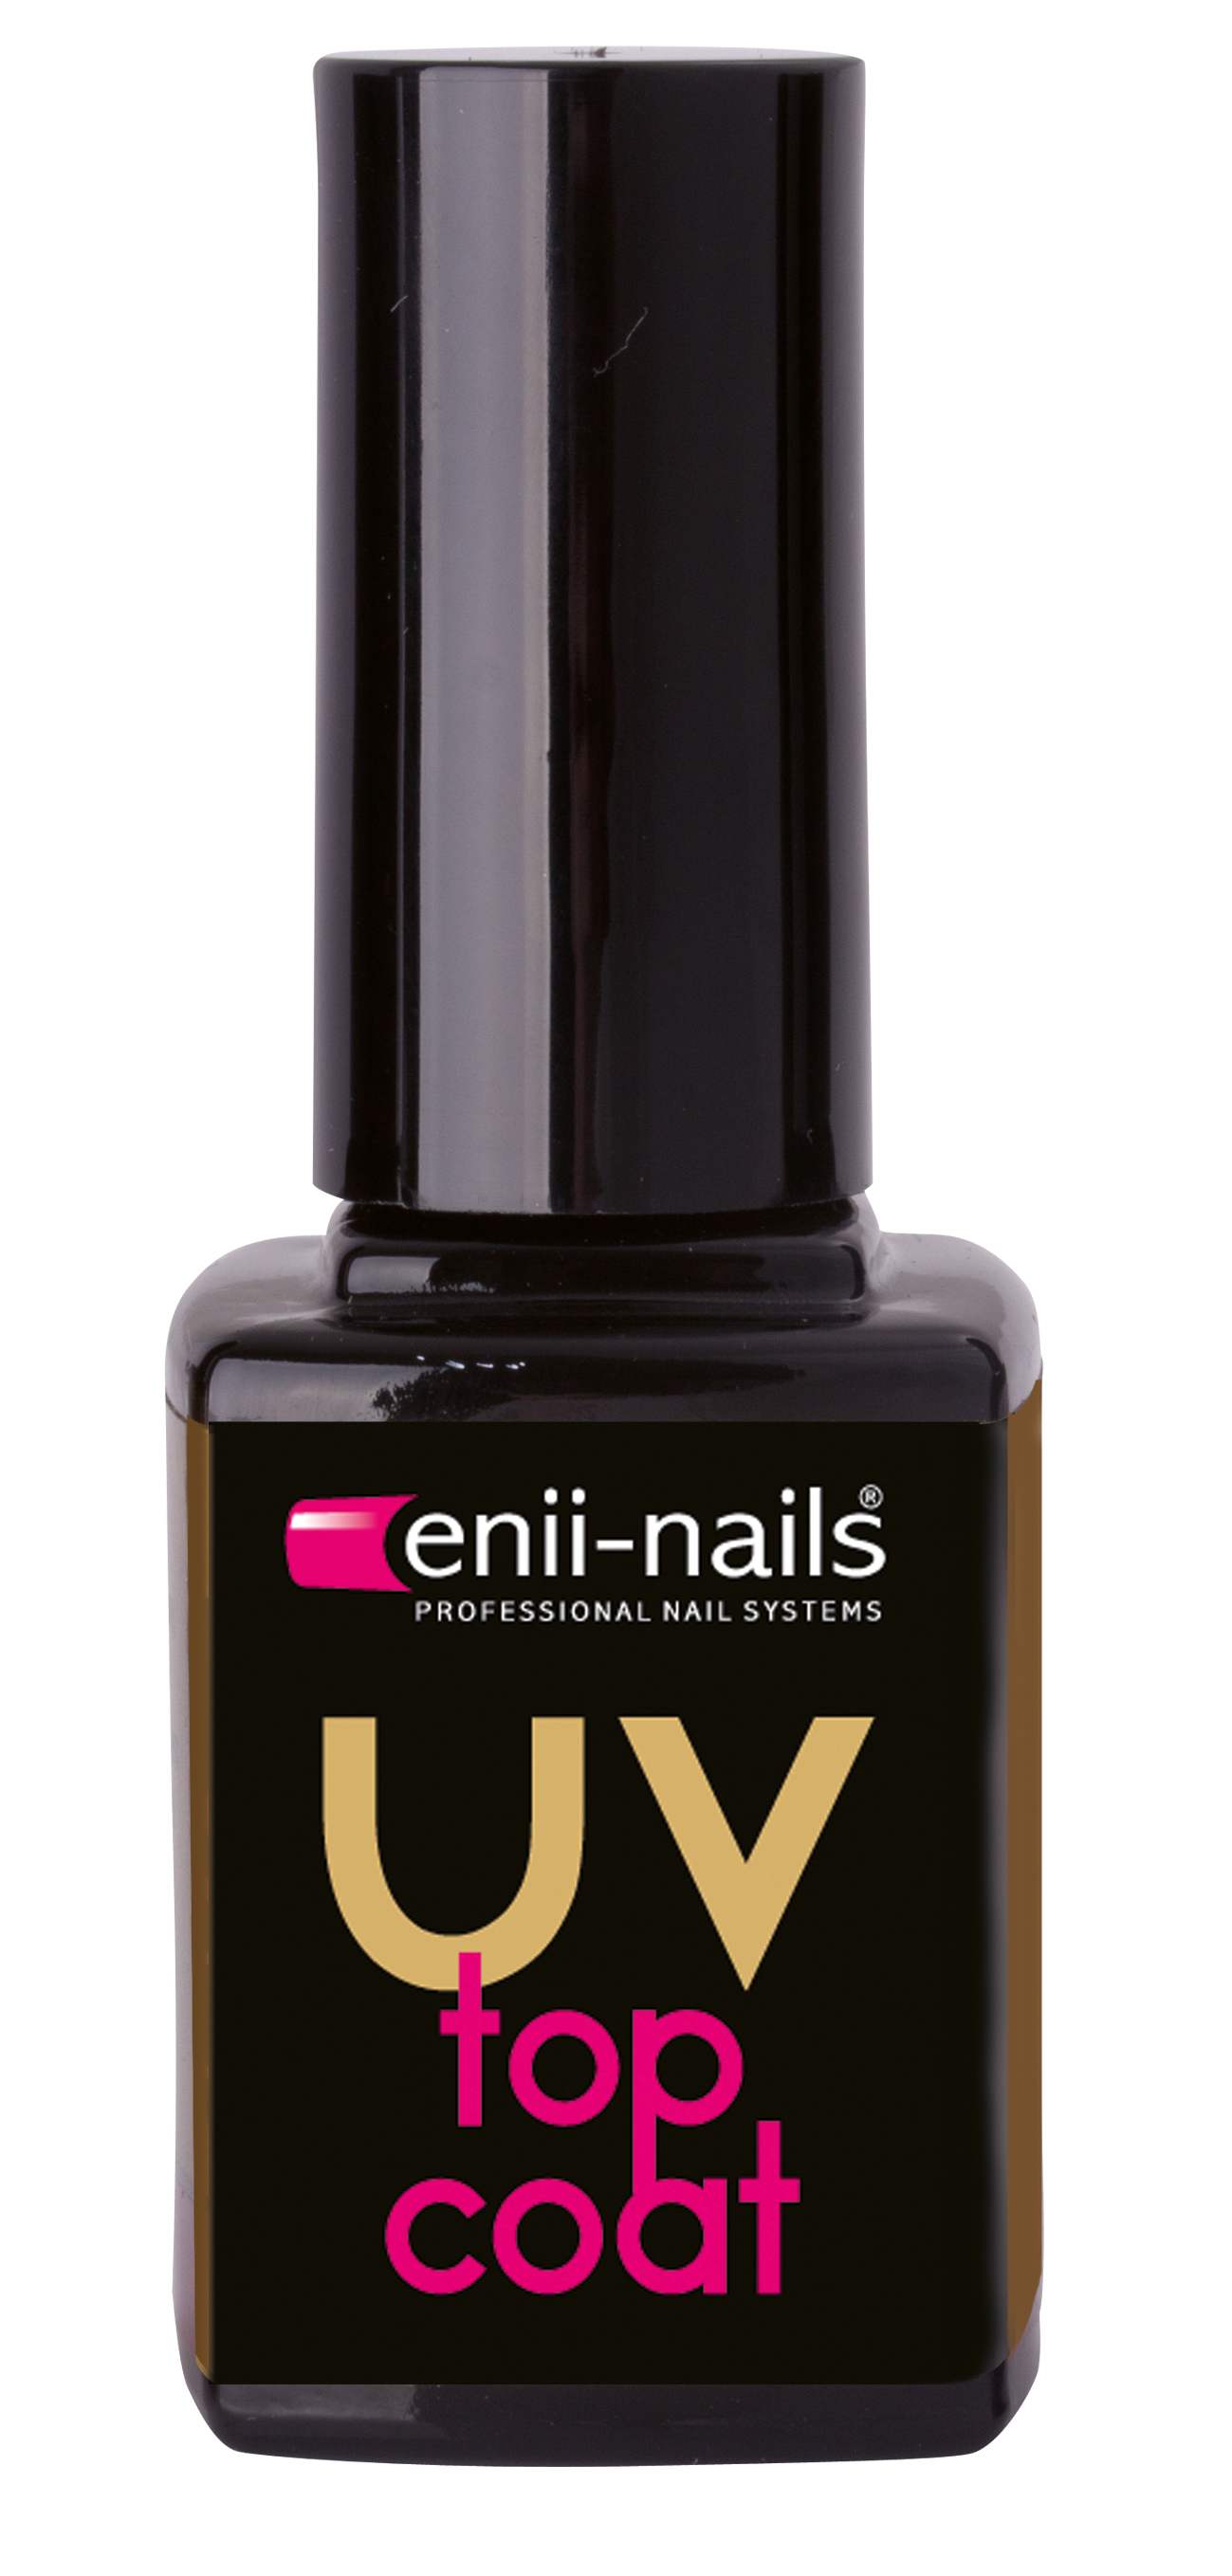 ENII-NAILS UV top coat  60 s - rychleschnoucí